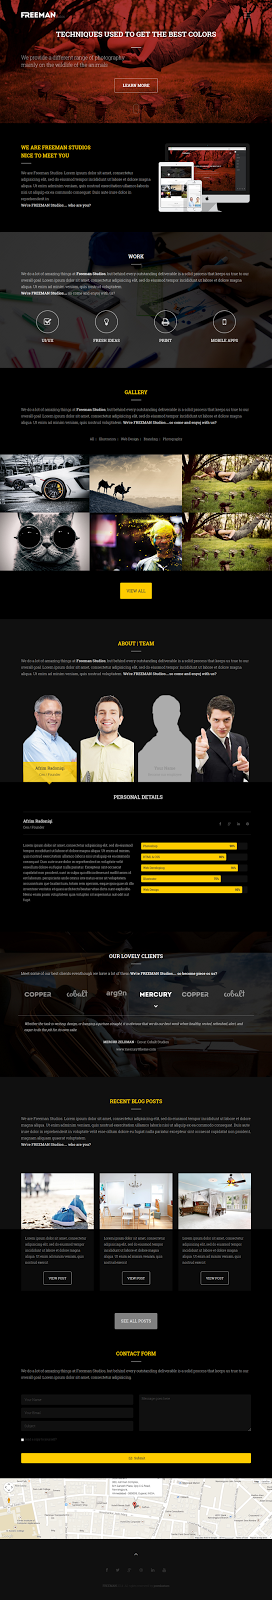 Multipurpose One Page Joomla Theme